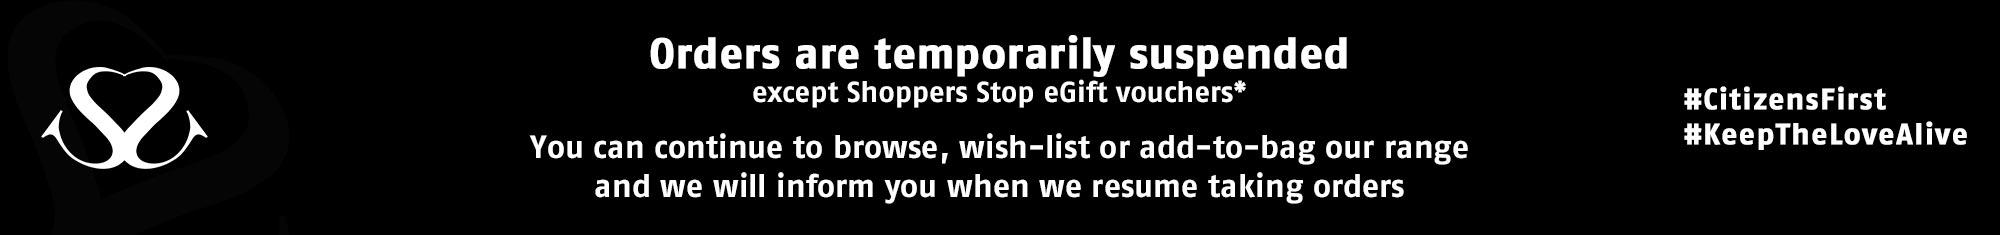 Temporarily Orders Suspended